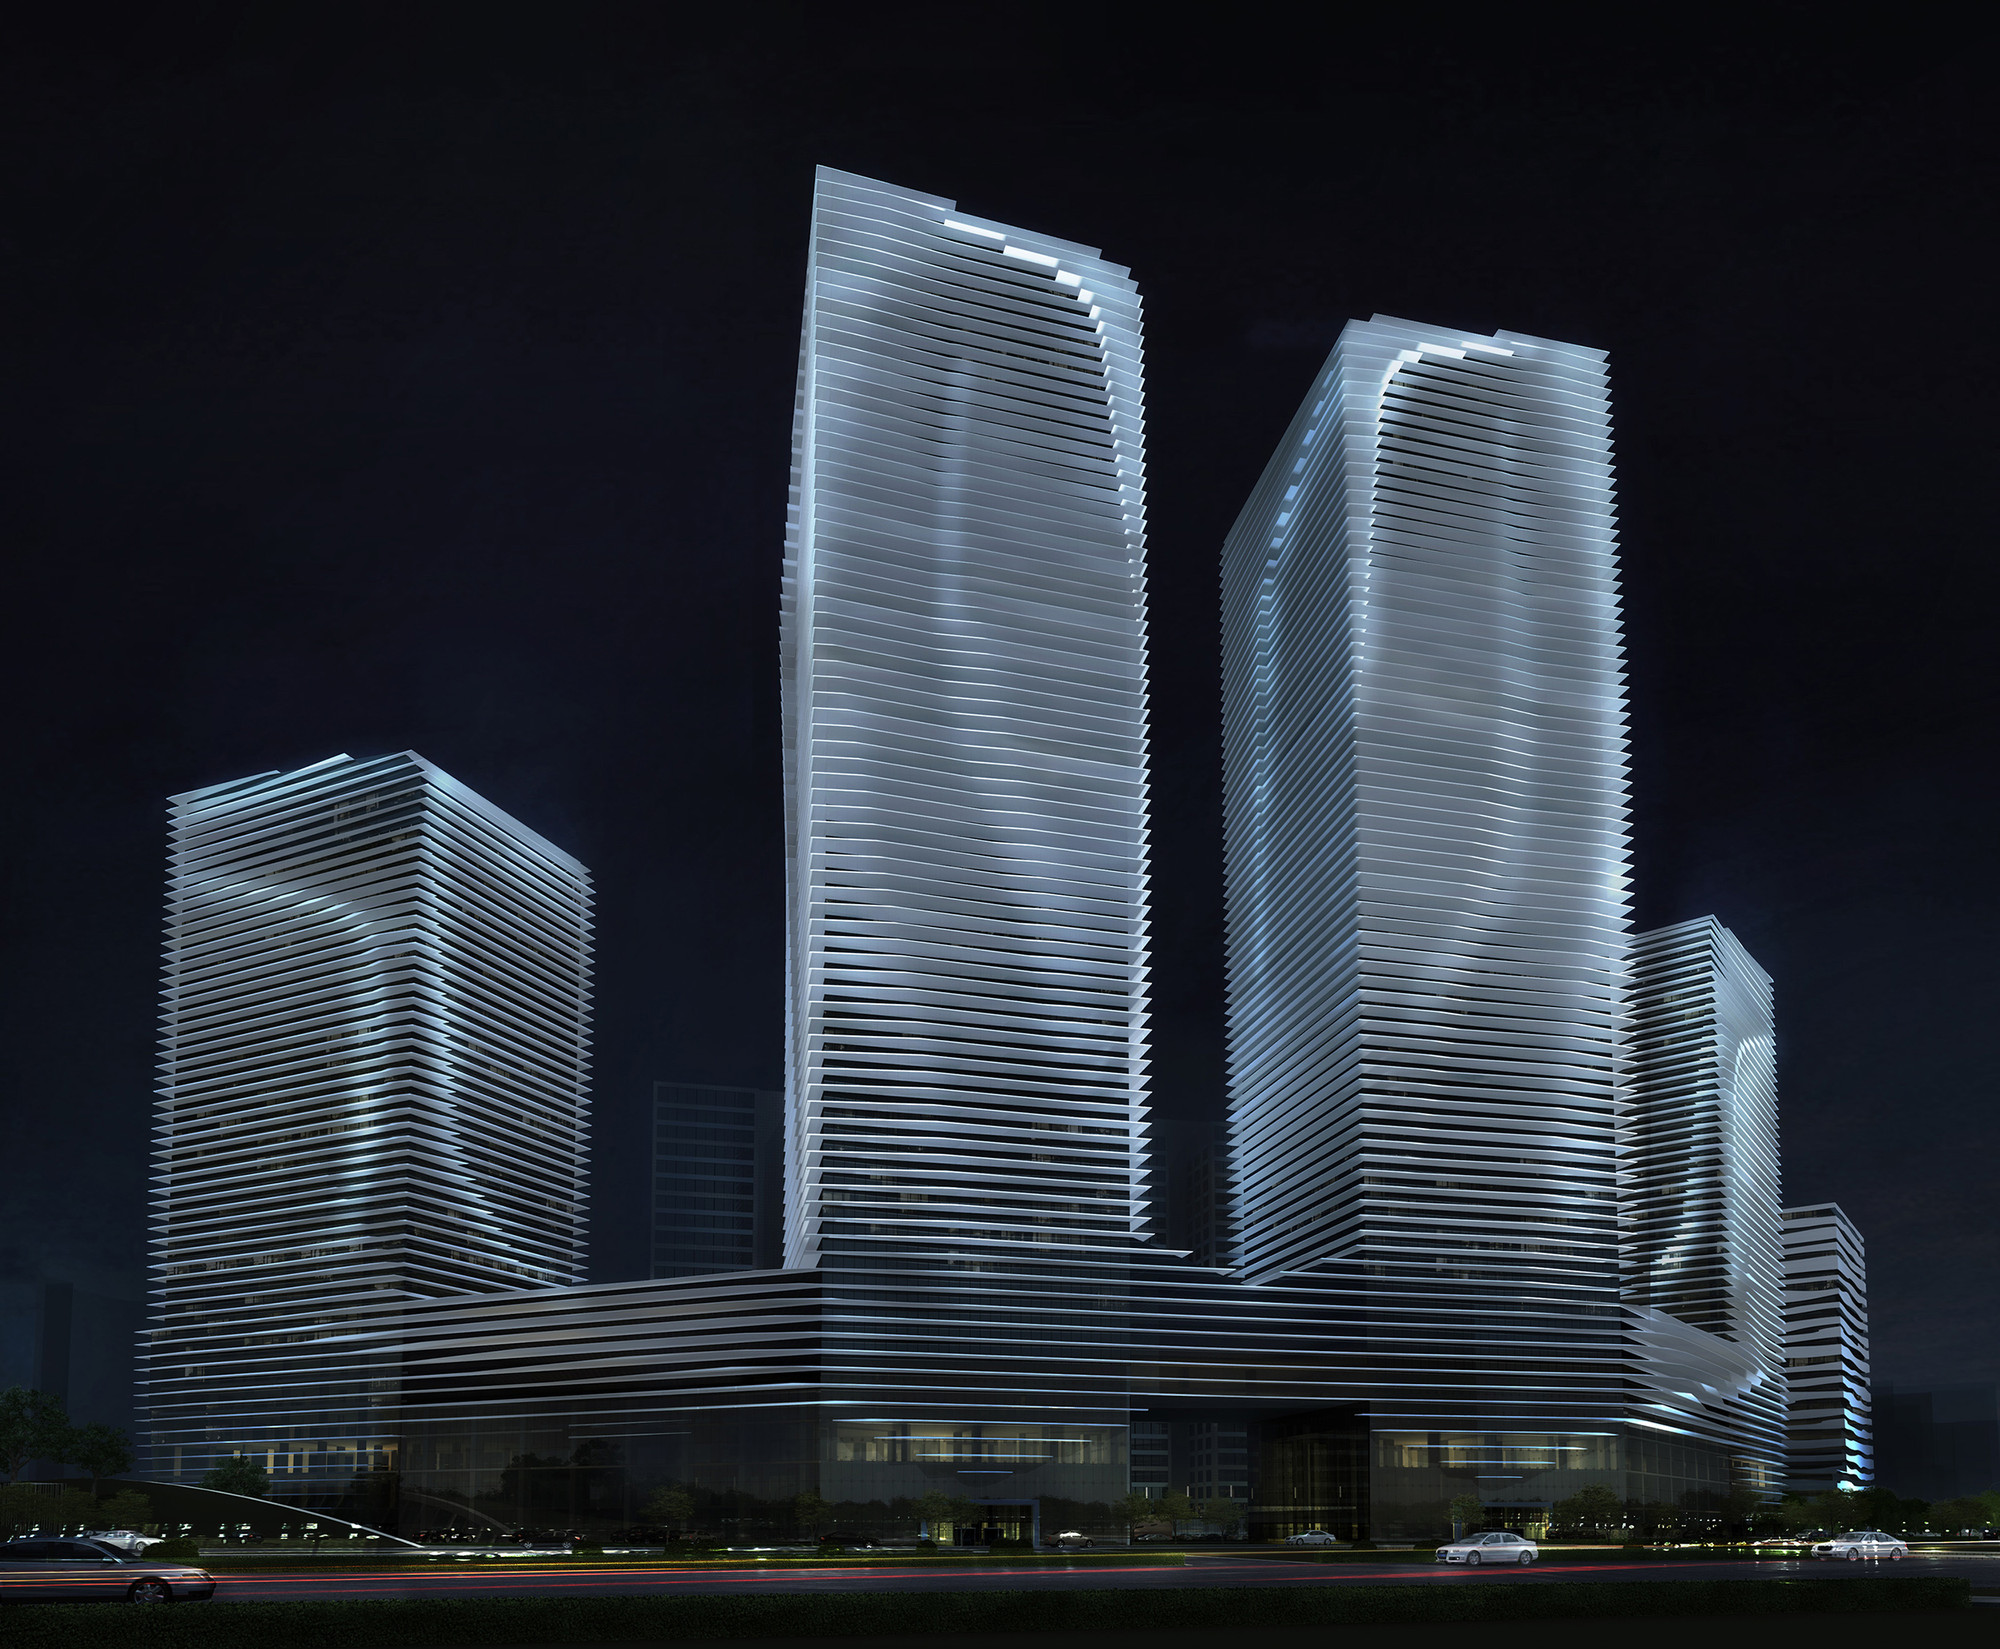 RTA-Office inicia construcción del Qingdao Innovation Park en China, Cortesia de RTA-Office